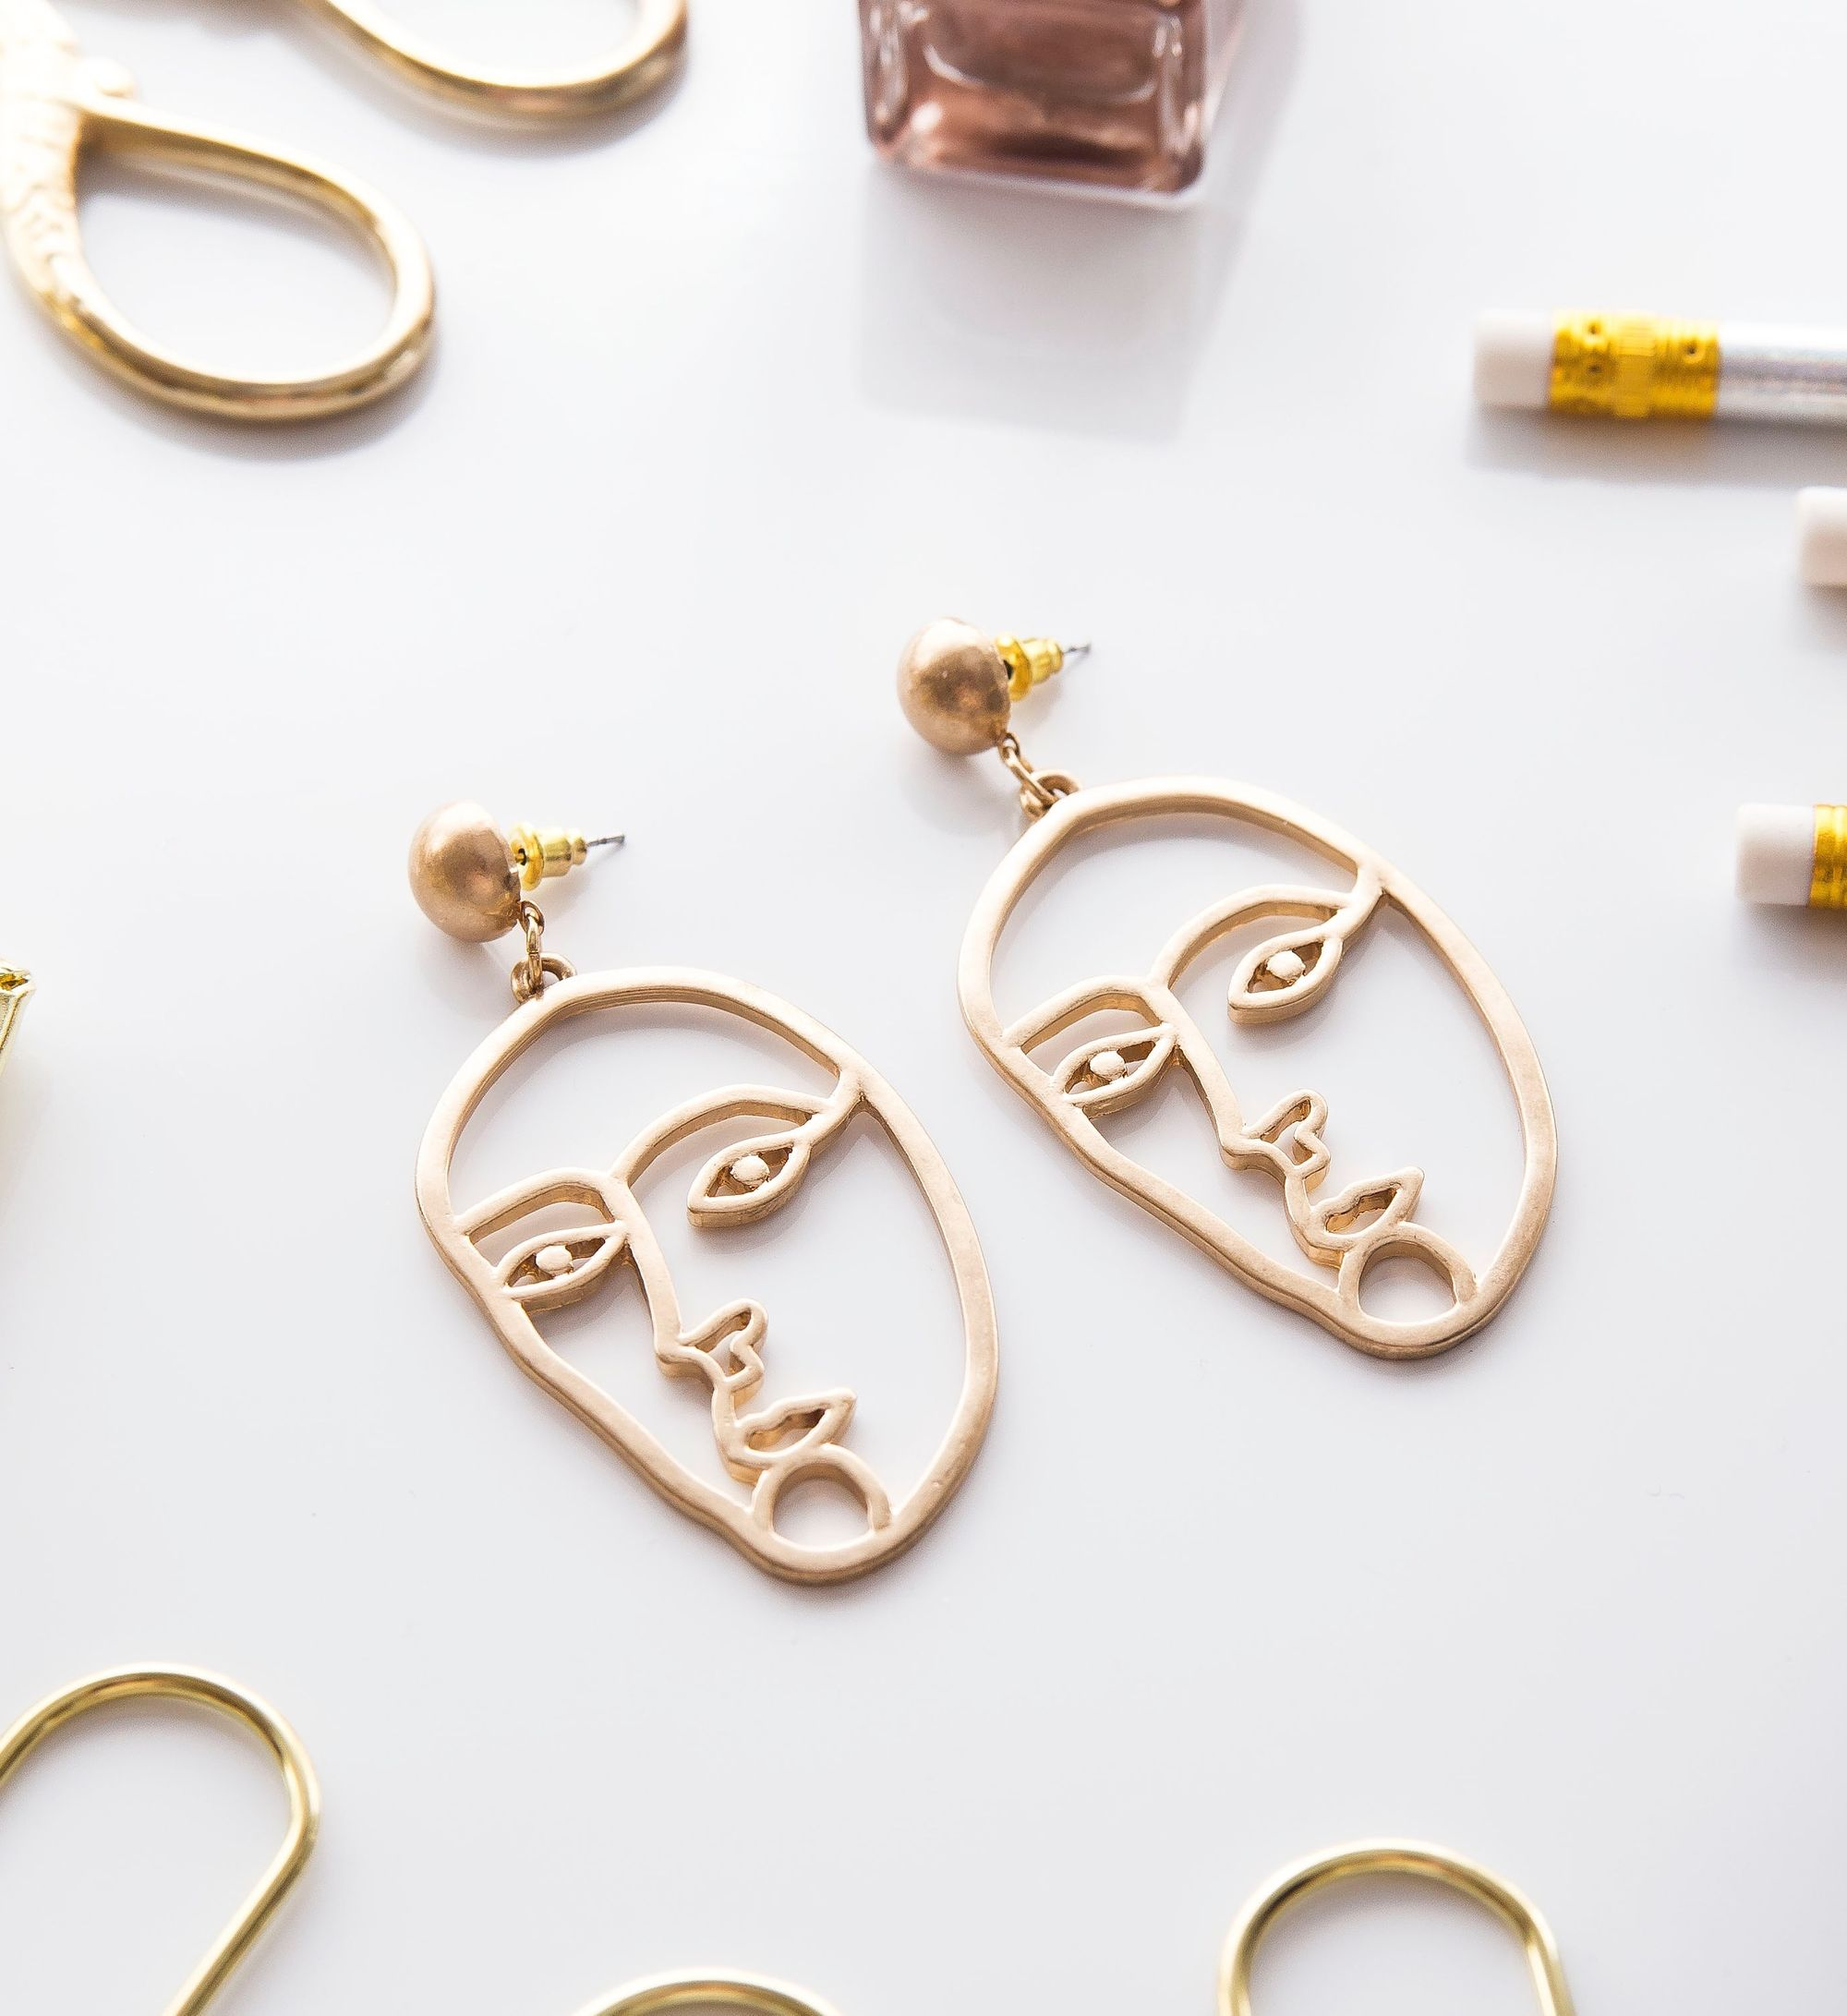 Accessory Trends To Try In 2020